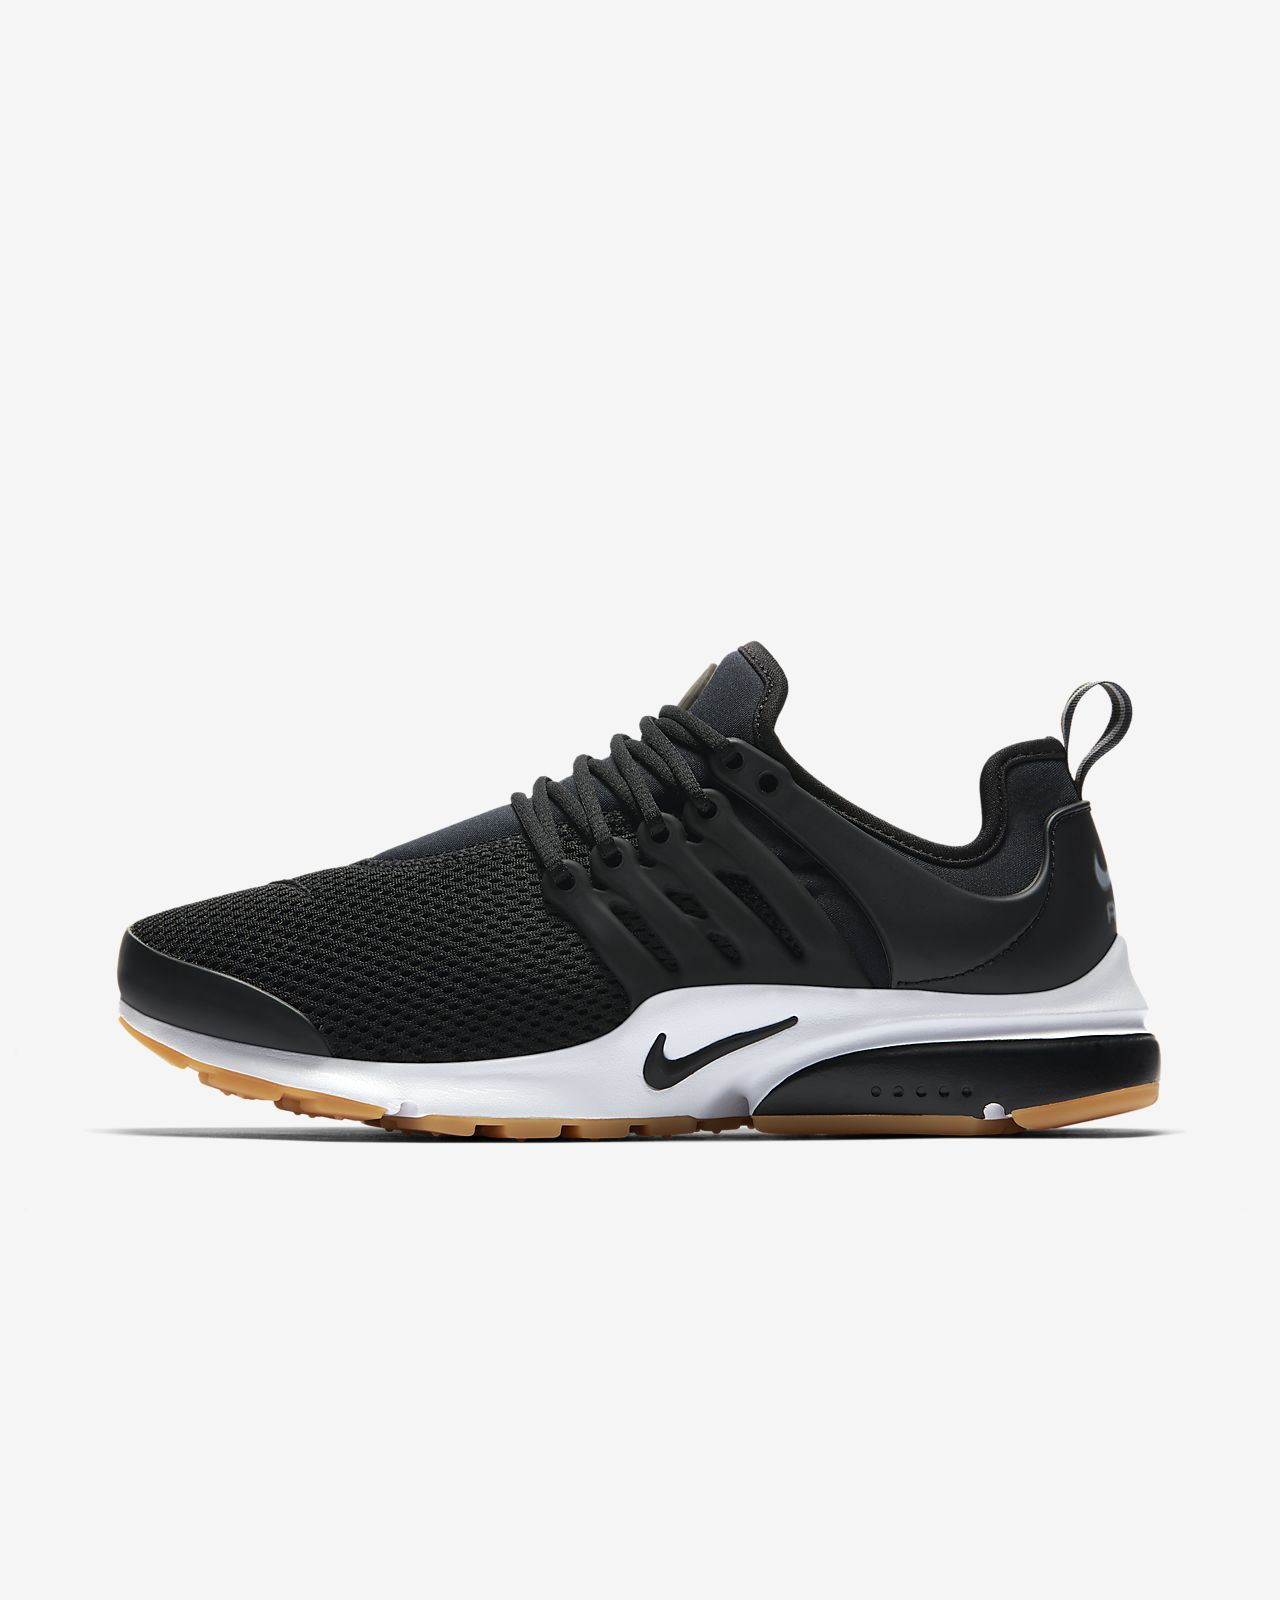 watch 8ddba 103df ... Nike Air Presto Women s Shoe